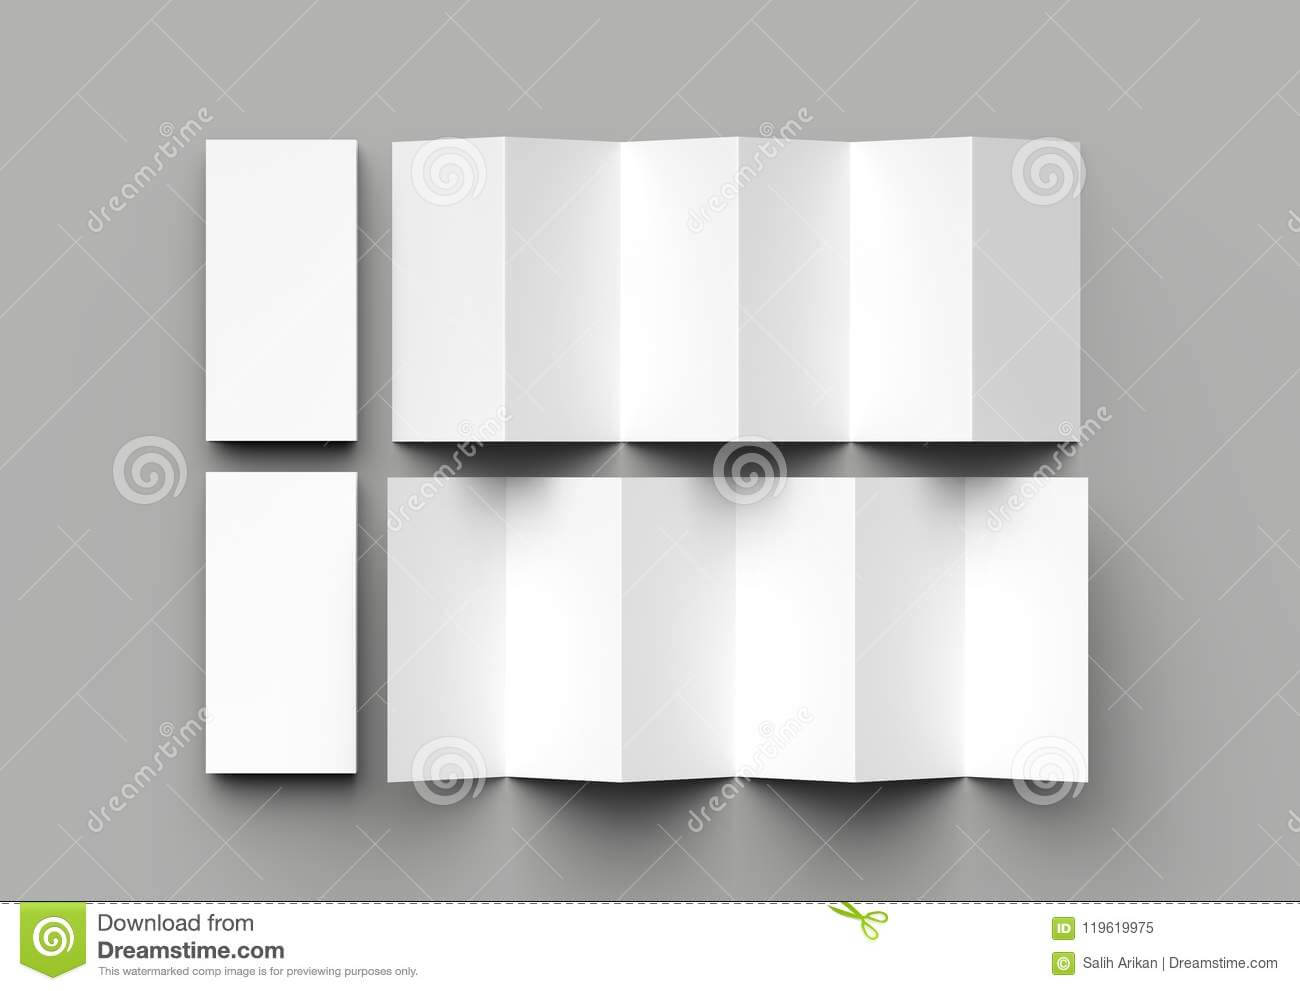 12 Page Leaflet, 6 Panel Accordion Fold - Z Fold Vertical With 12 Page Brochure Template